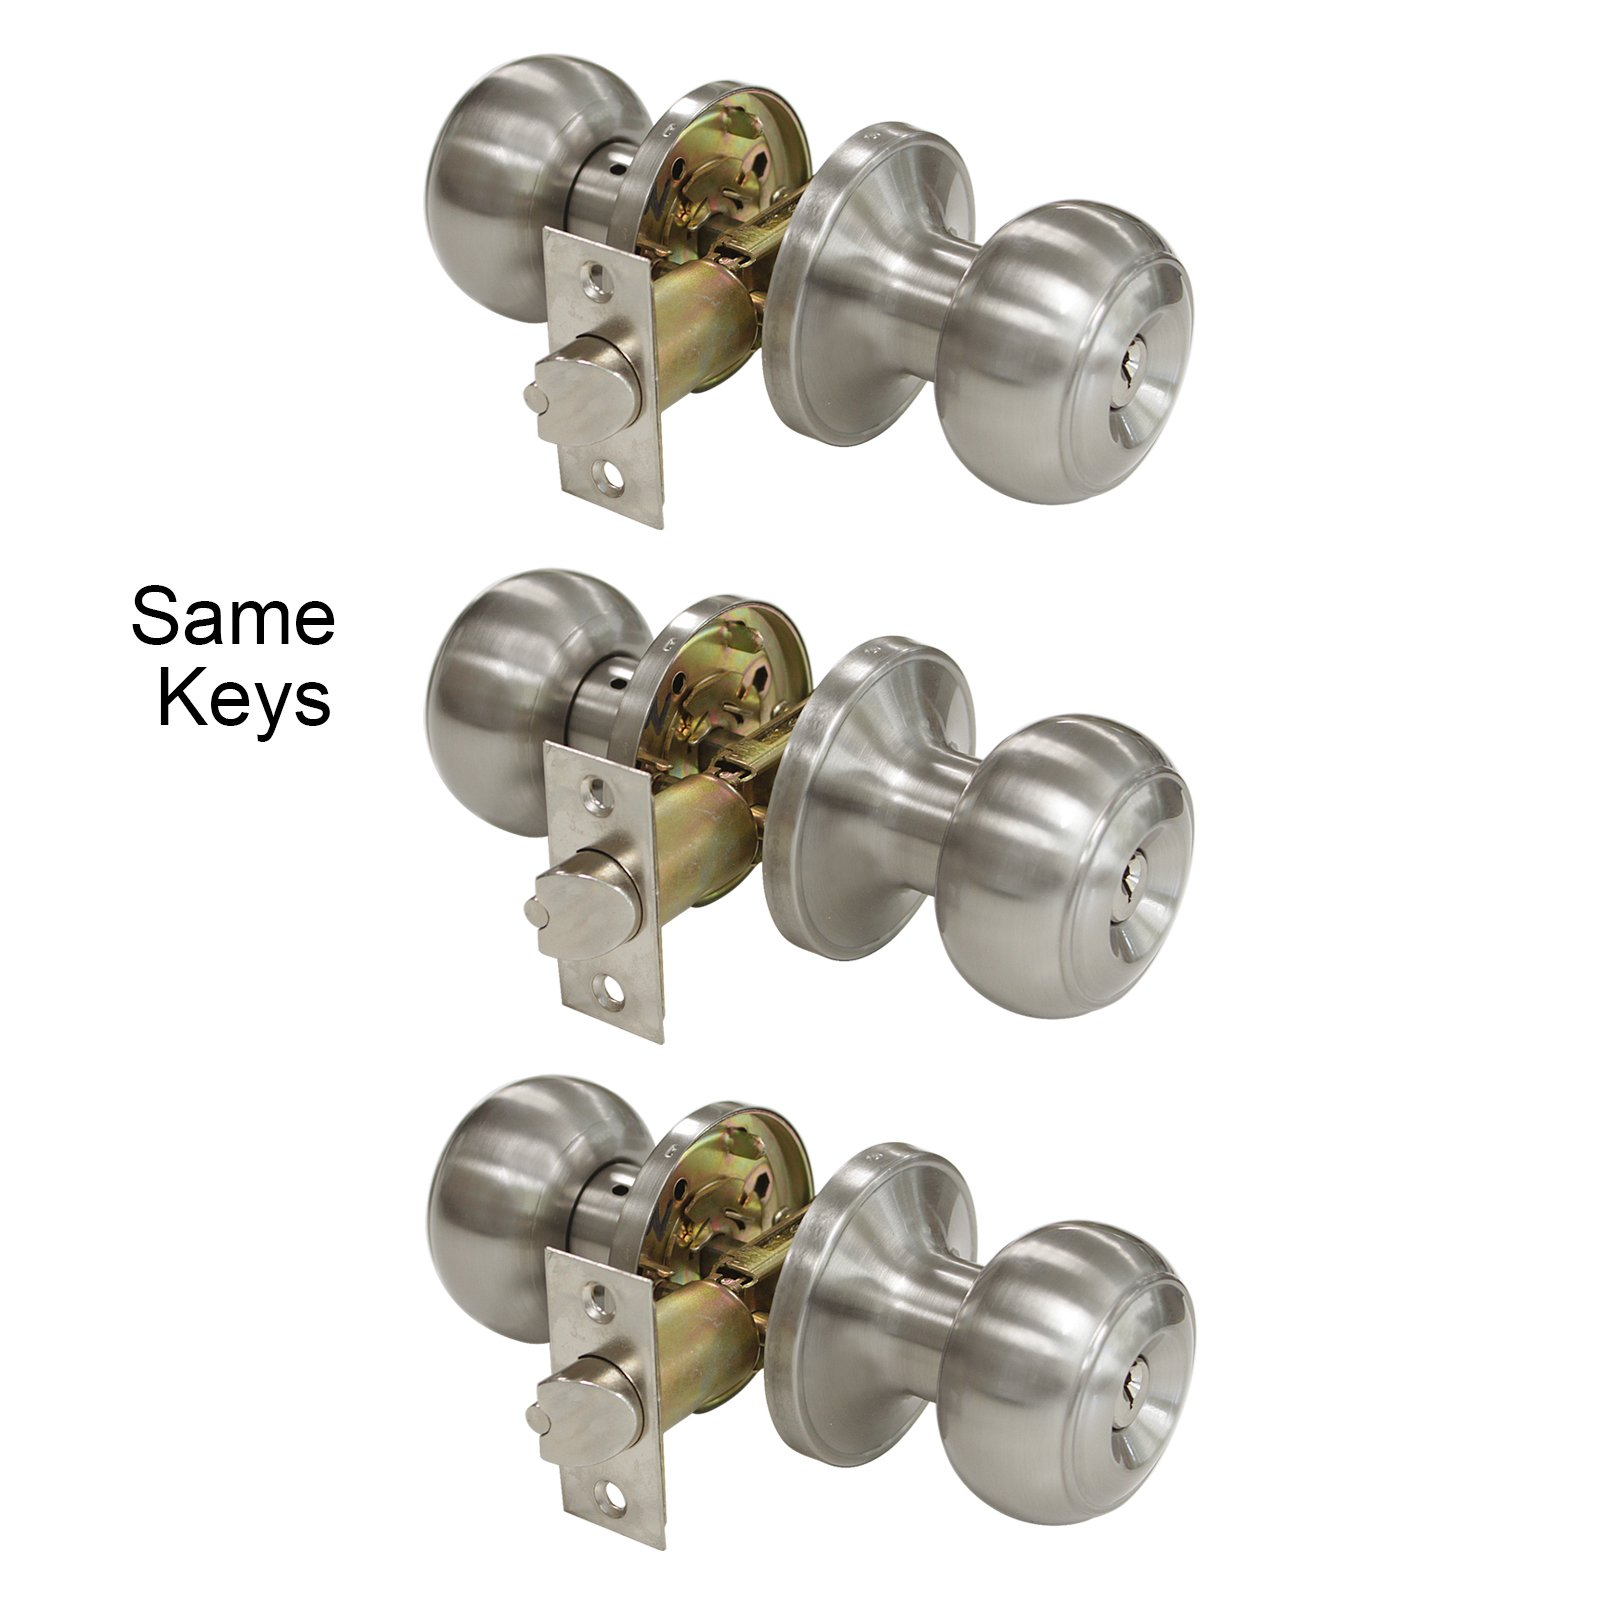 Gobrico Round Keyed-alike Exterior Door Hardware Entrance Locksets Knobs, Satin Nickel 3Pack